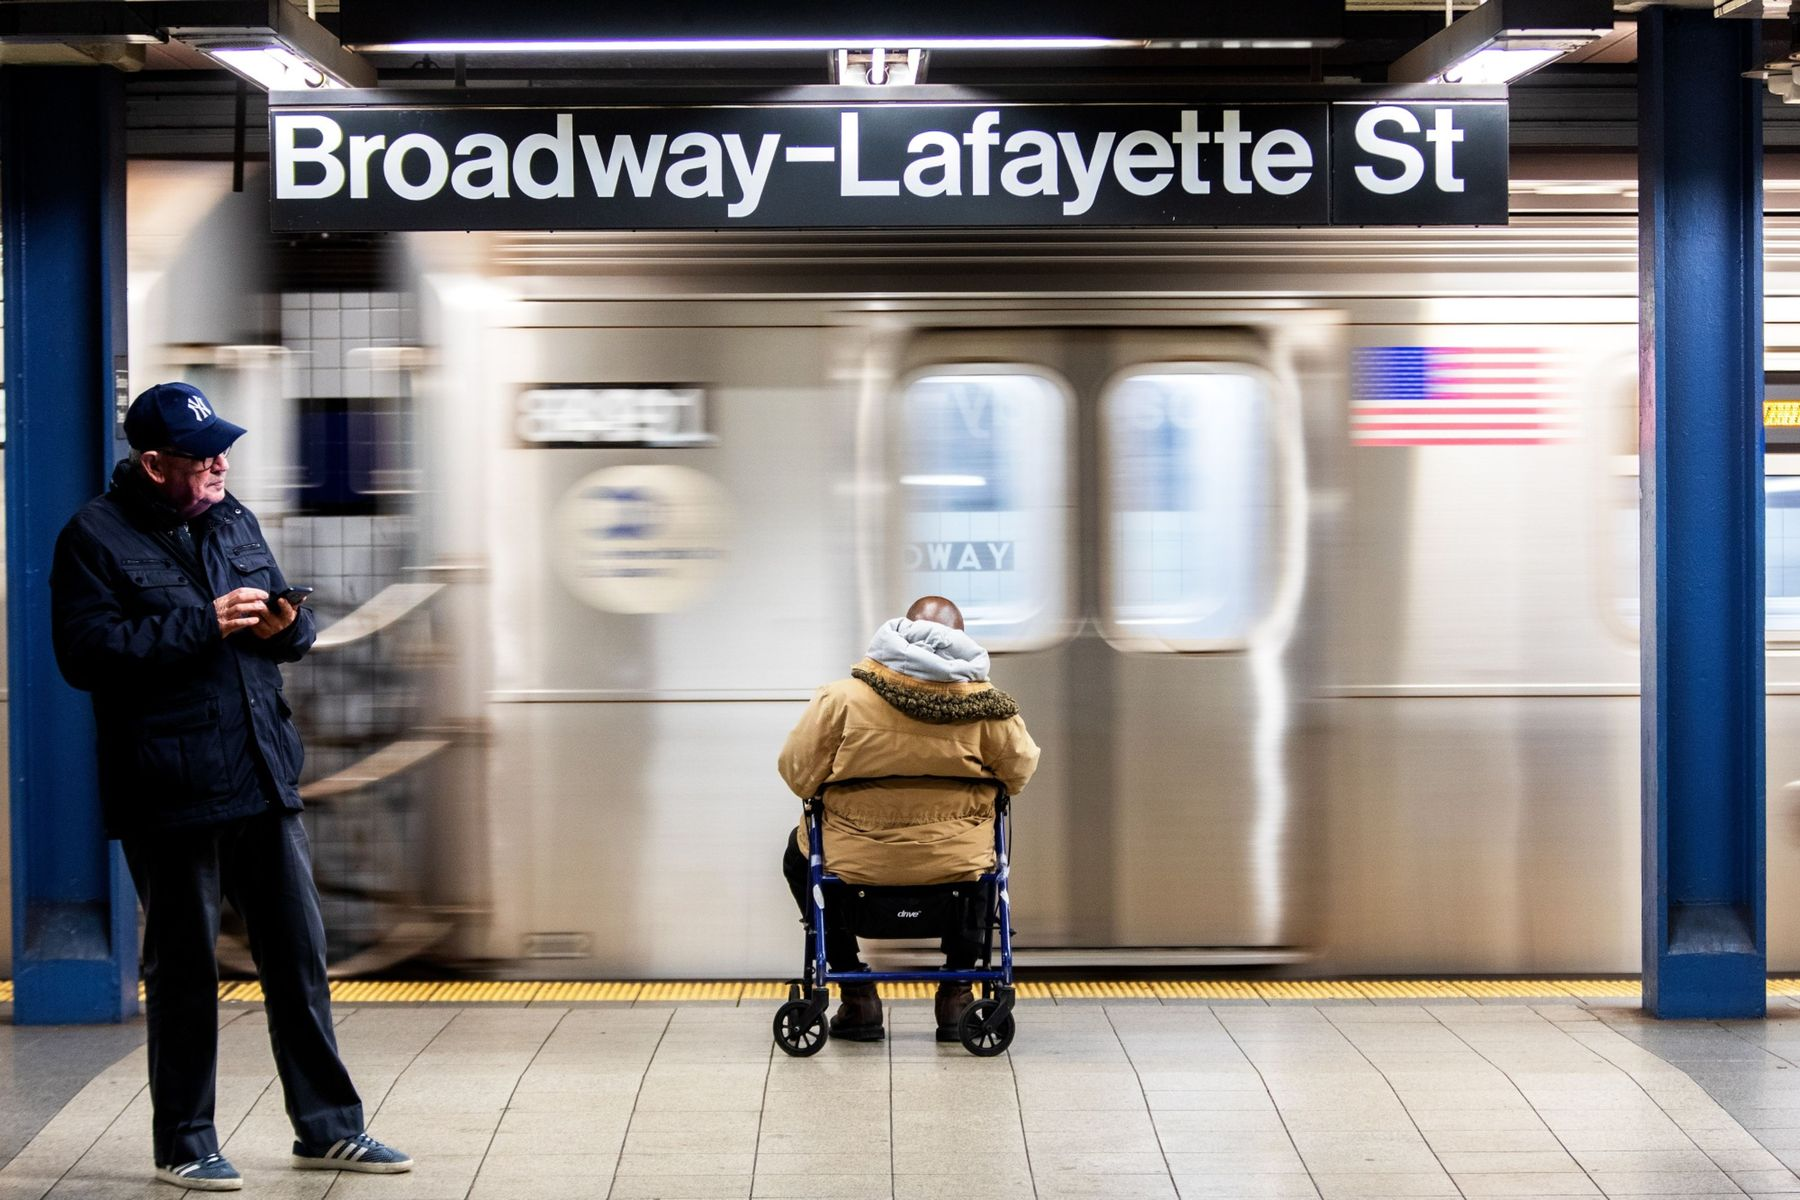 https://anysizedealsweek.com/wp-content/uploads/2020/10/broadway-NYC-train.jpg